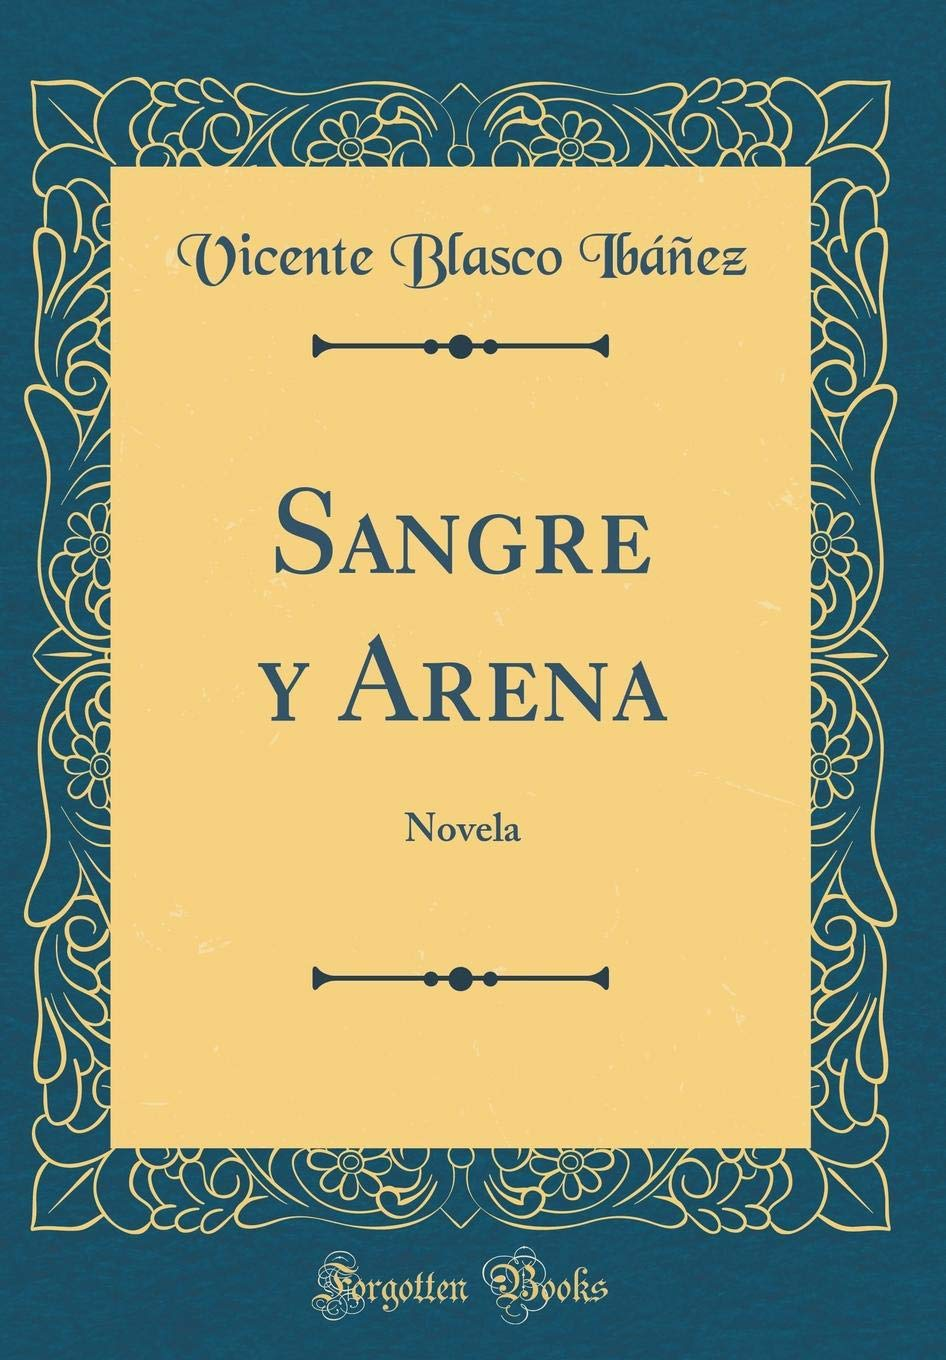 Sangre y Arena: Novela (Classic Reprint) (Spanish Edition) (Spanish) Hardcover – March 9, 2018